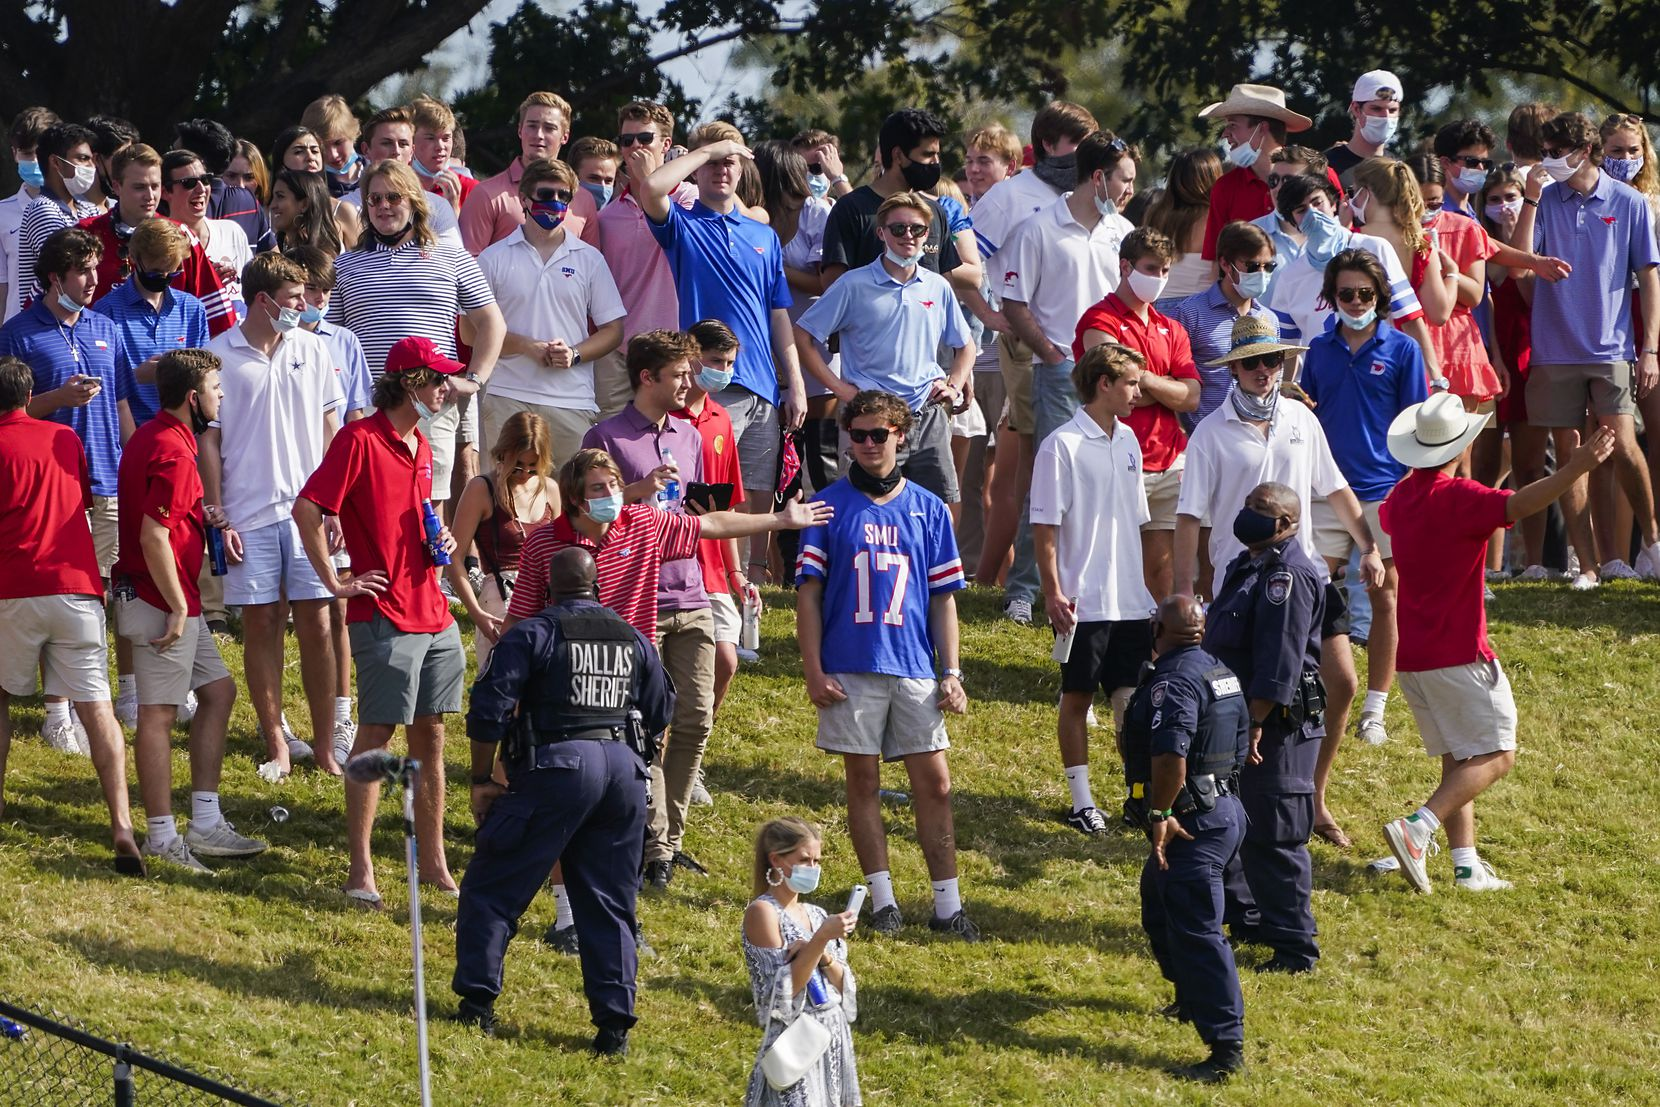 SMU students argue with law enforcement as they clear fans from the hill in the south end zone during the first half of an NCAA football game against Memphis at Ford Stadium on Saturday, Oct. 3, 2020, in Dallas. (Smiley N. Pool/The Dallas Morning News)